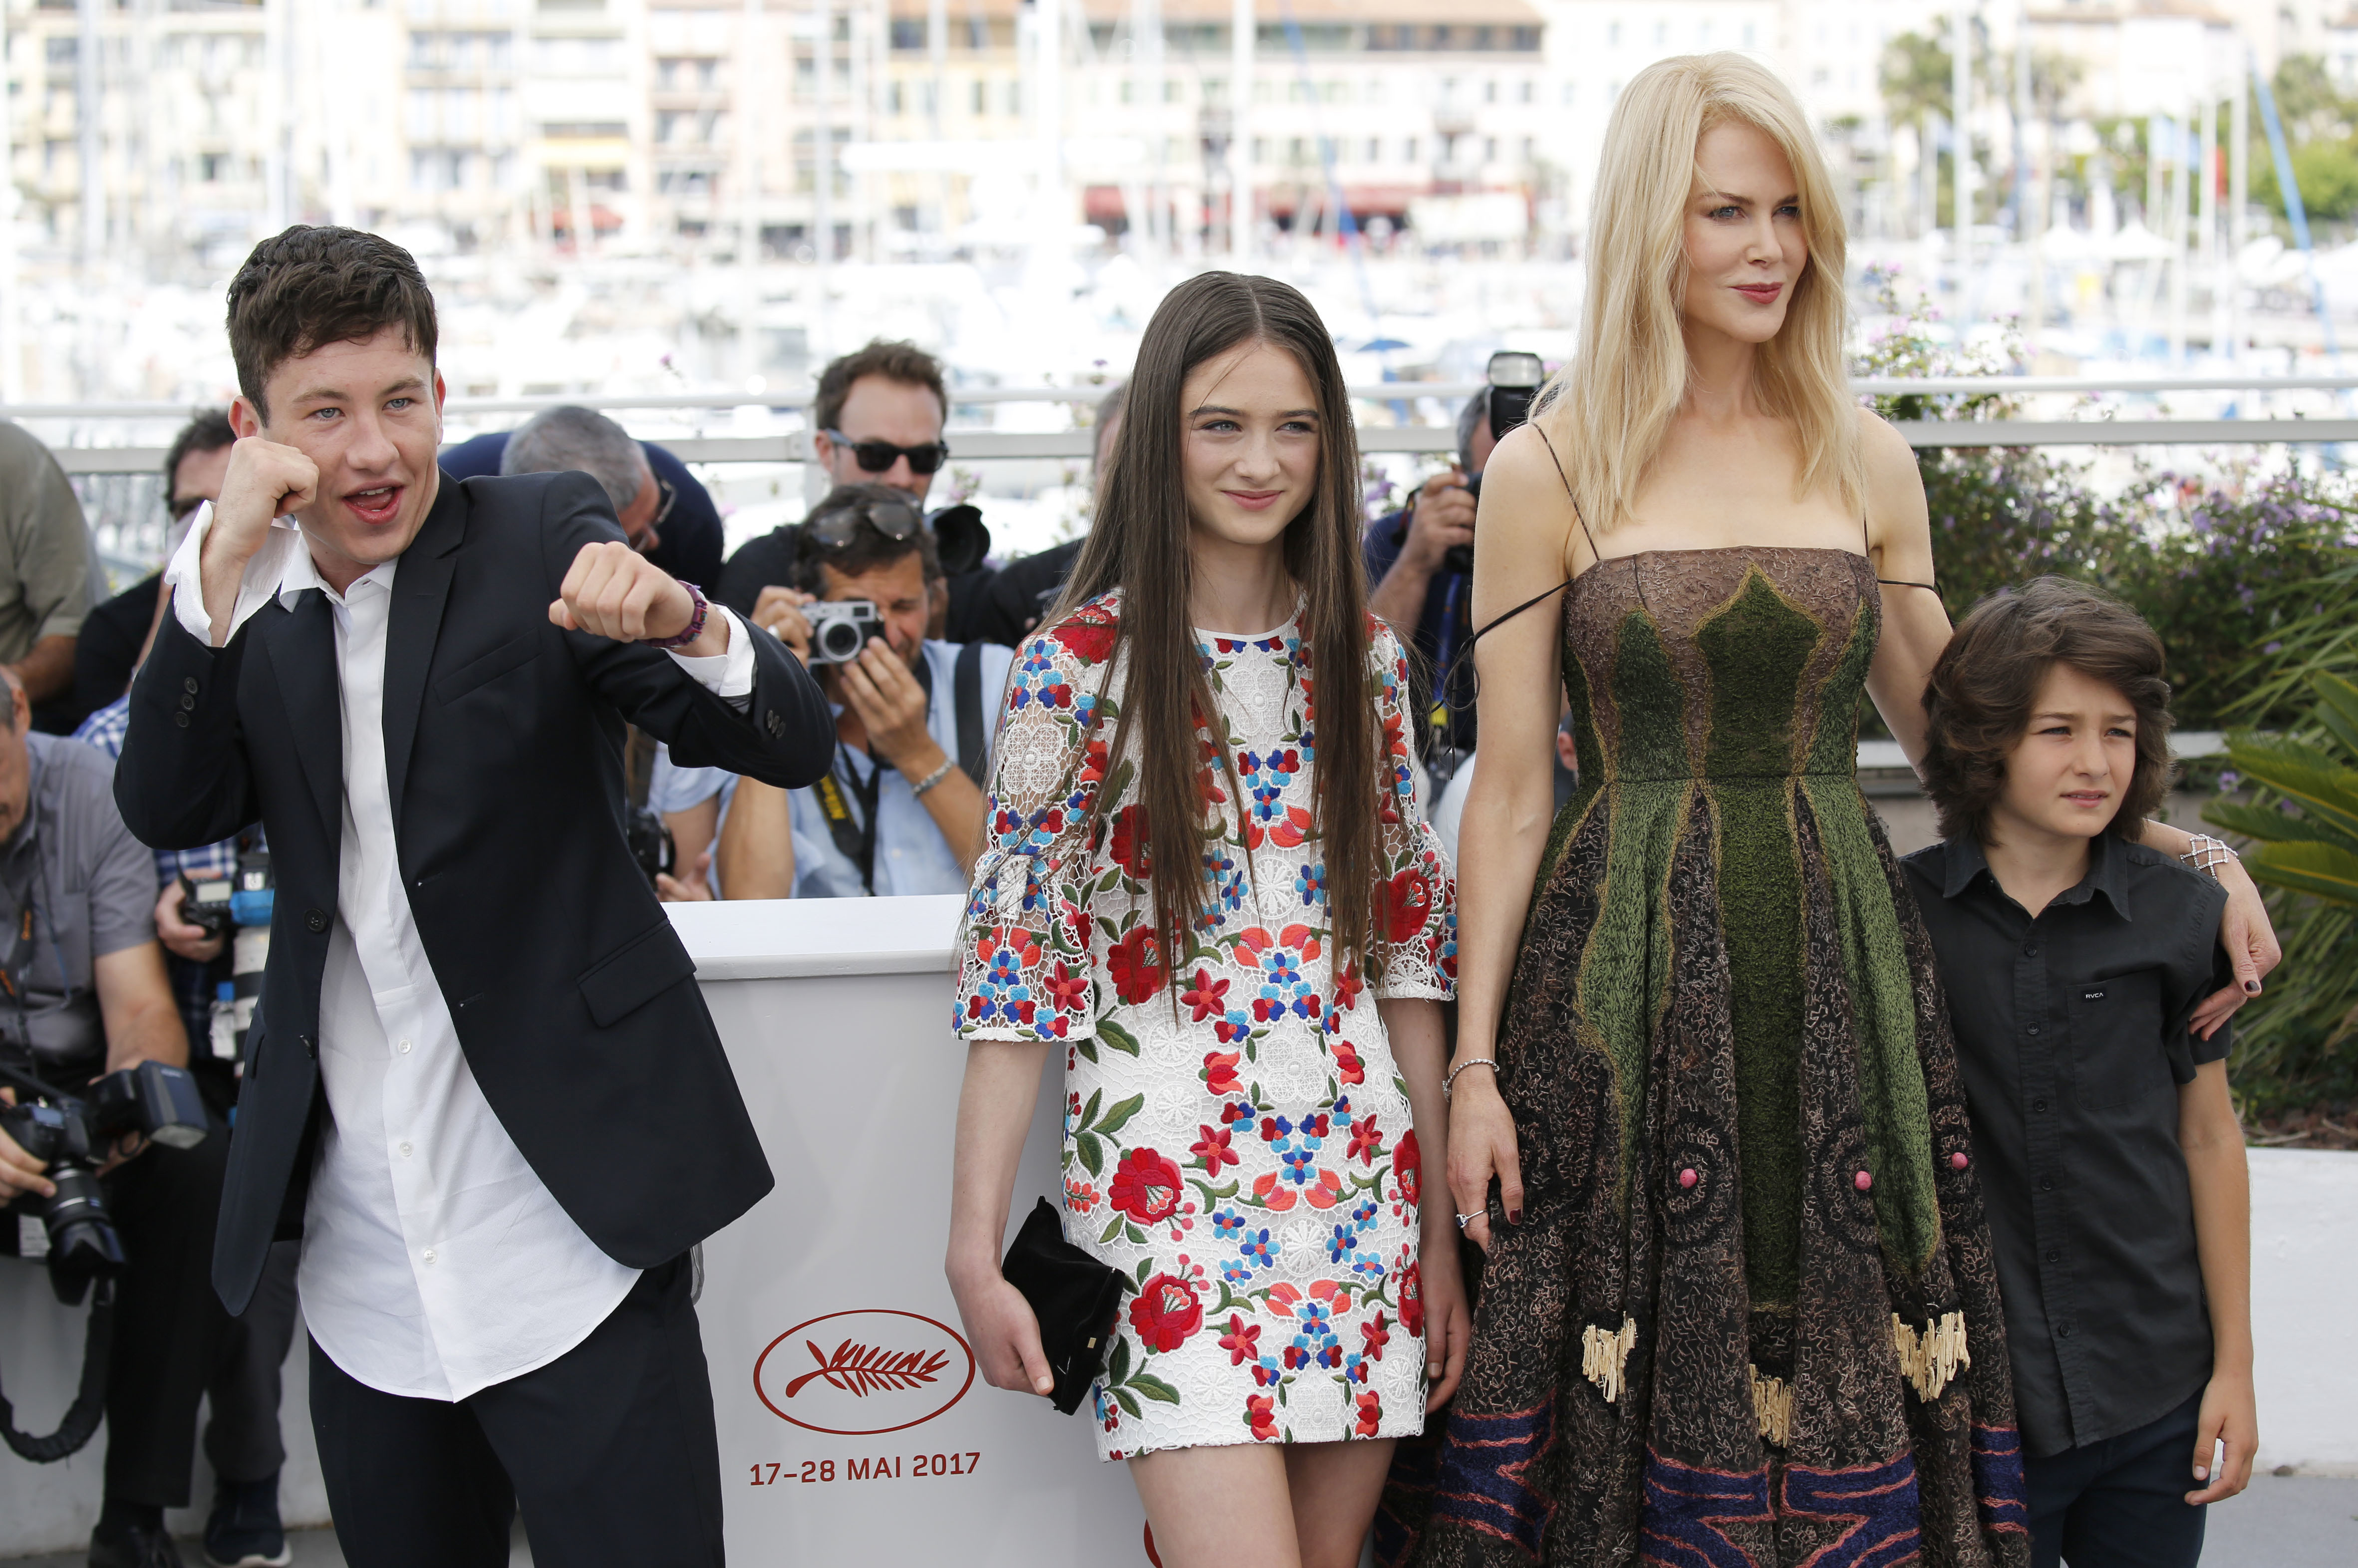 70th annual Cannes Film Festival - 'The Killing of a Sacred Deer' - Photocall  Featuring: Barry Keoghan, Raffey Cassidy, Nicole Kidman, Sunny Suljic Where: Cannes, France When: 22 May 2017 Credit: Dave Bedrosian/Future Image/WENN.com  **Not available for publication in Germany**